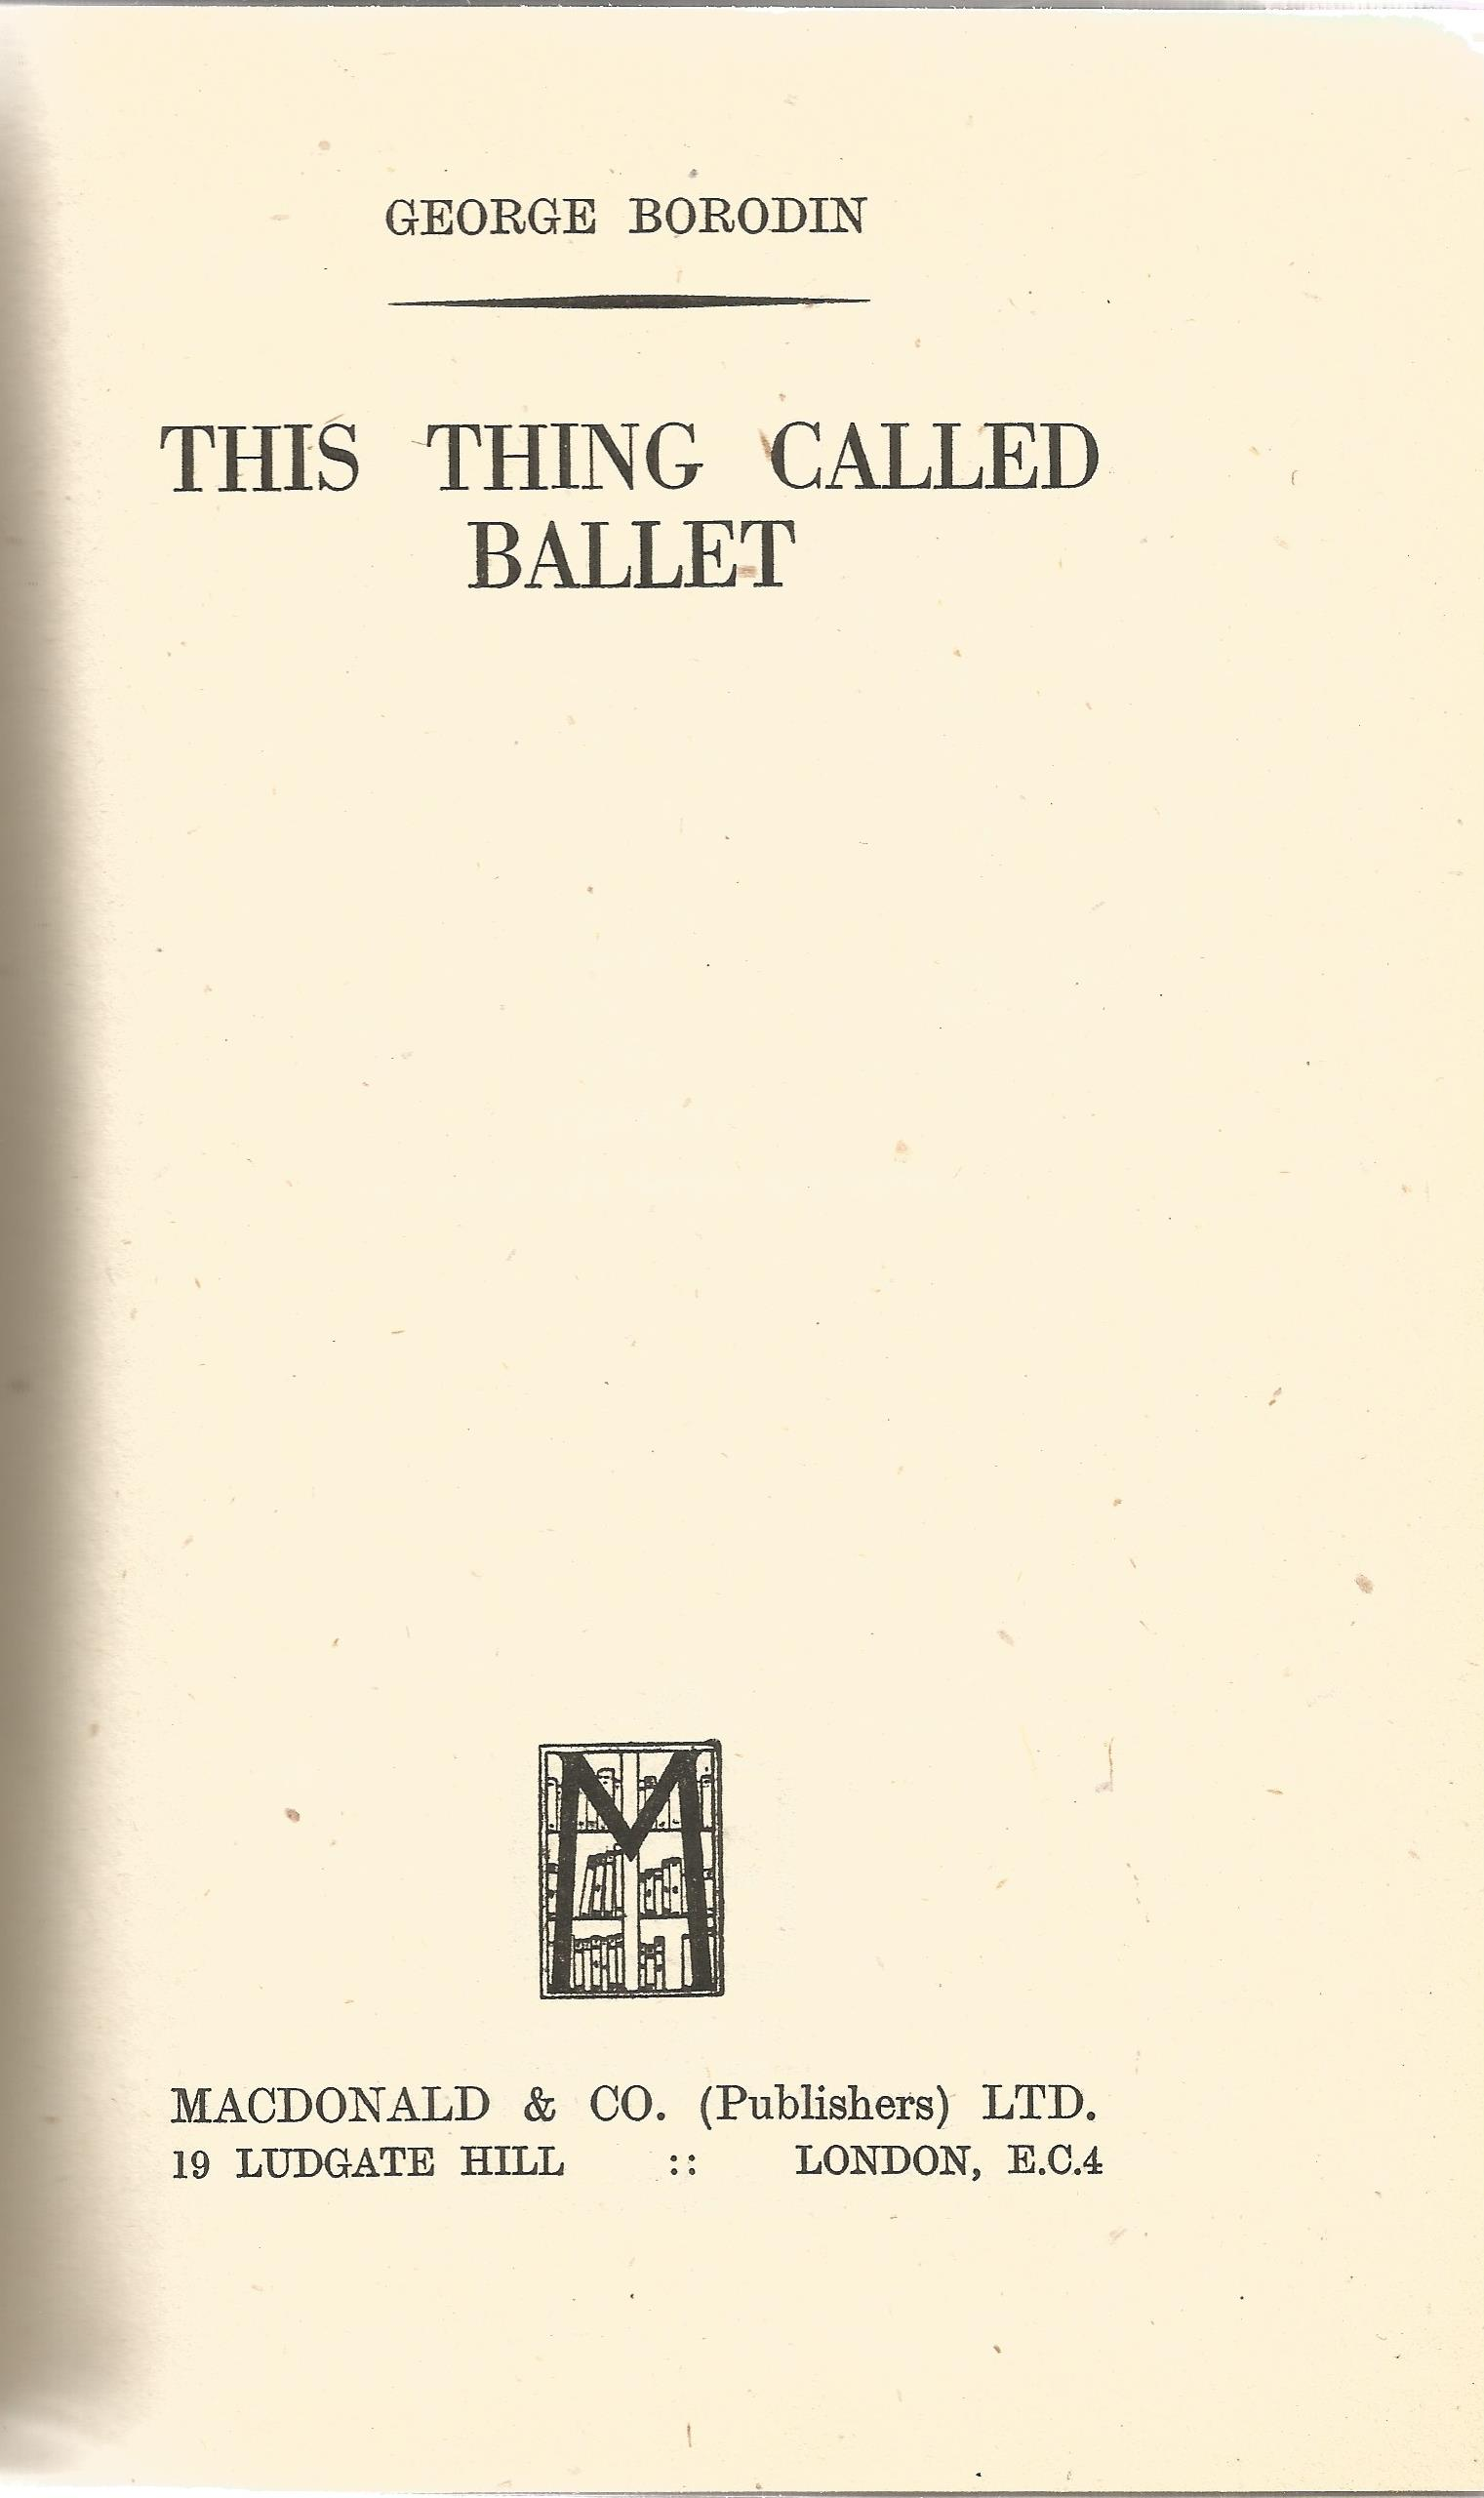 Hardback Book This Thing Called Ballet by George Borodin published by Macdonald & Co (Publishers) - Image 2 of 3